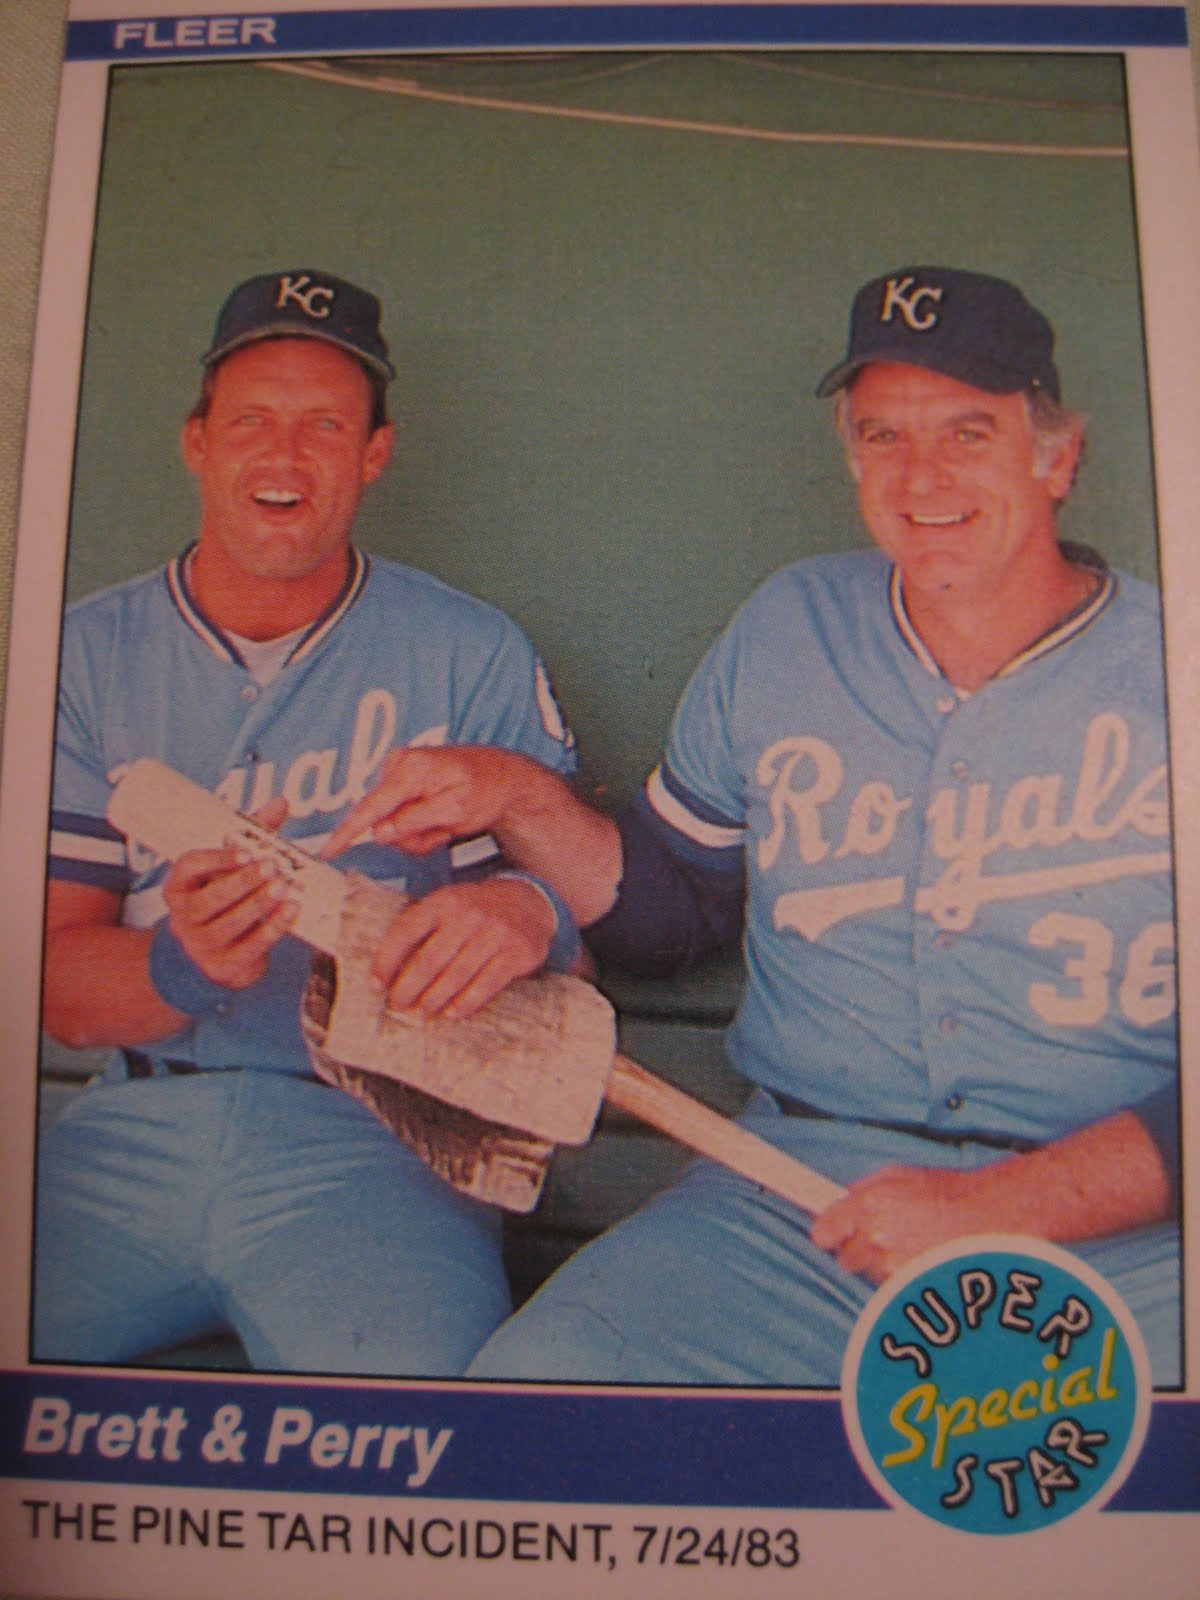 baseball cards come to life interview longtime fleer i started fleer when they started doing baseball in 1981 i have been the bruins photographer for 38 years and at that time was looking to fill some